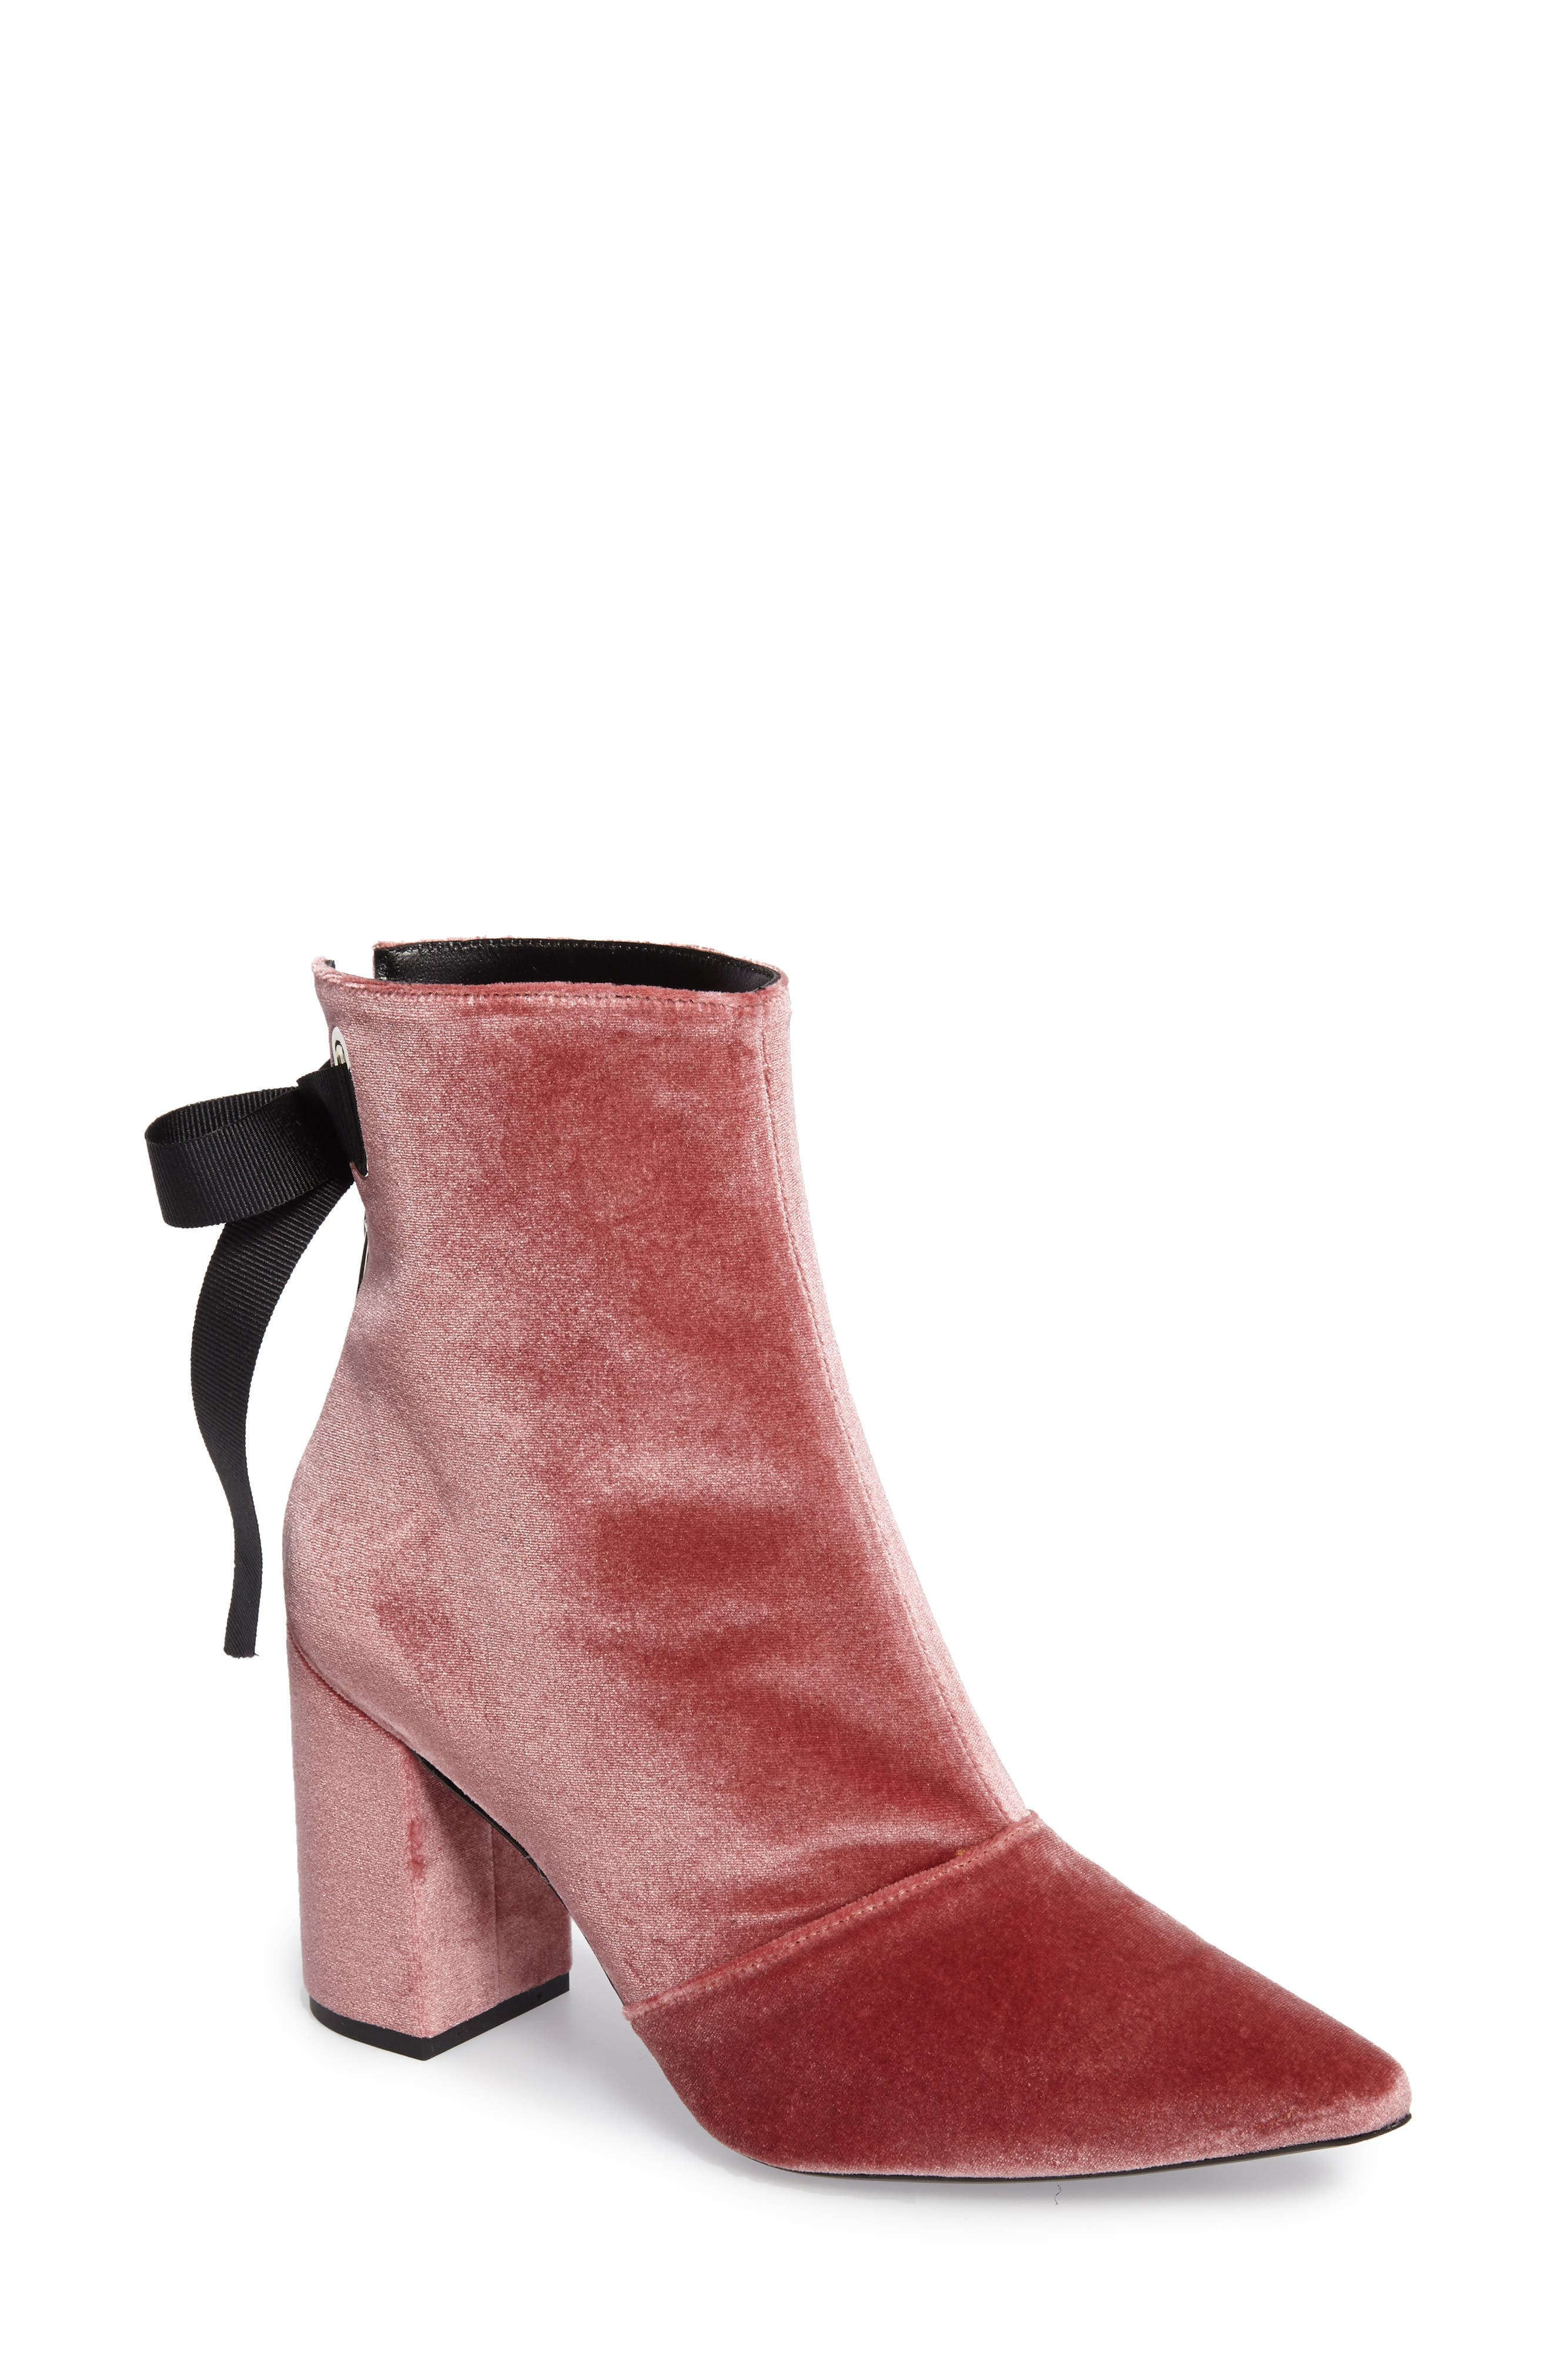 Alternate Image 1 Selected - Robert Clergerie x Self-Portrait Karlit Pointy Toe Bootie (Women)